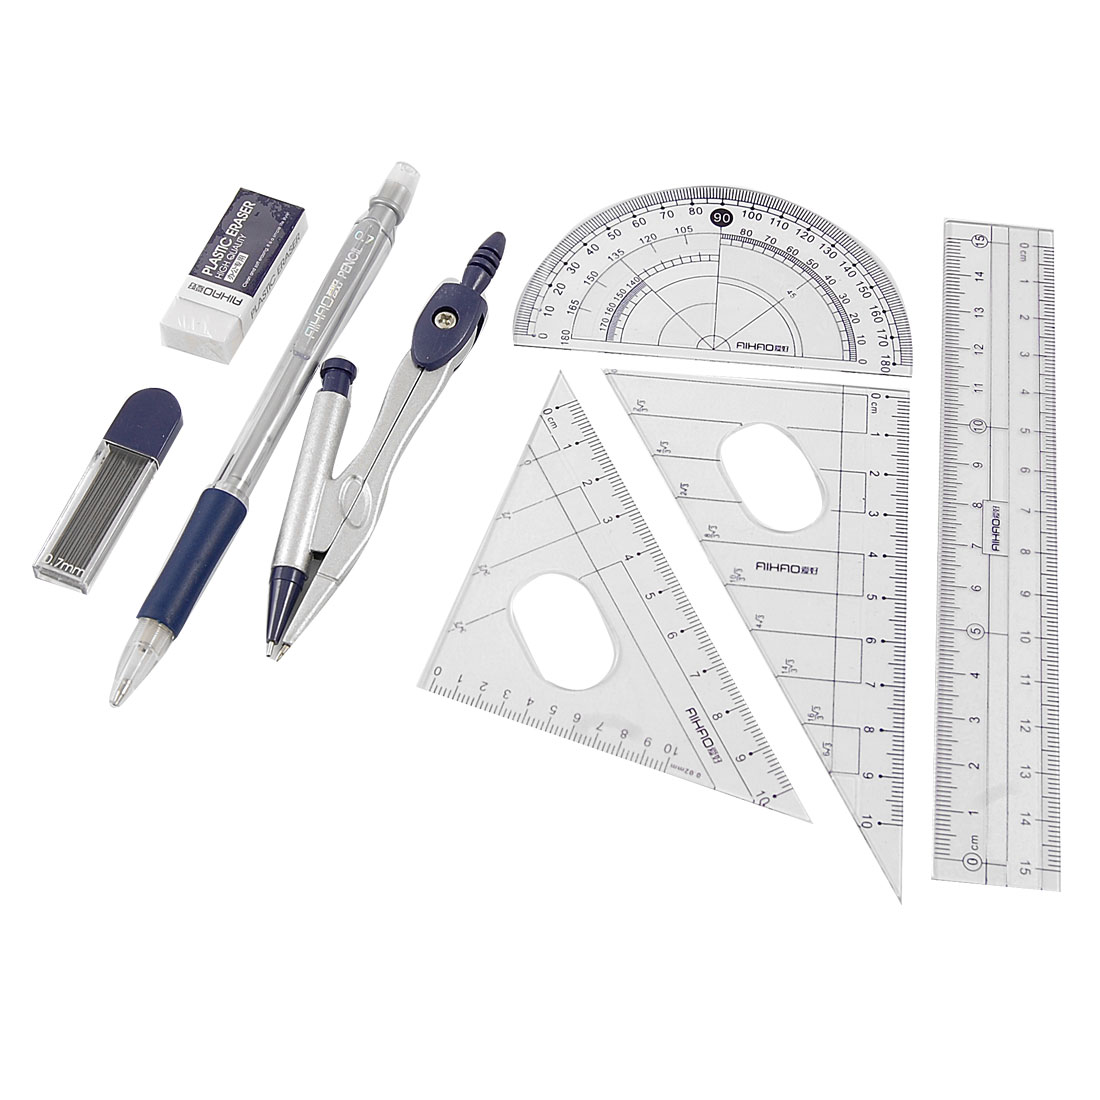 8 in 1 Office School Propelling Pencil Eraser Protractor Compass Rulers Set w Case